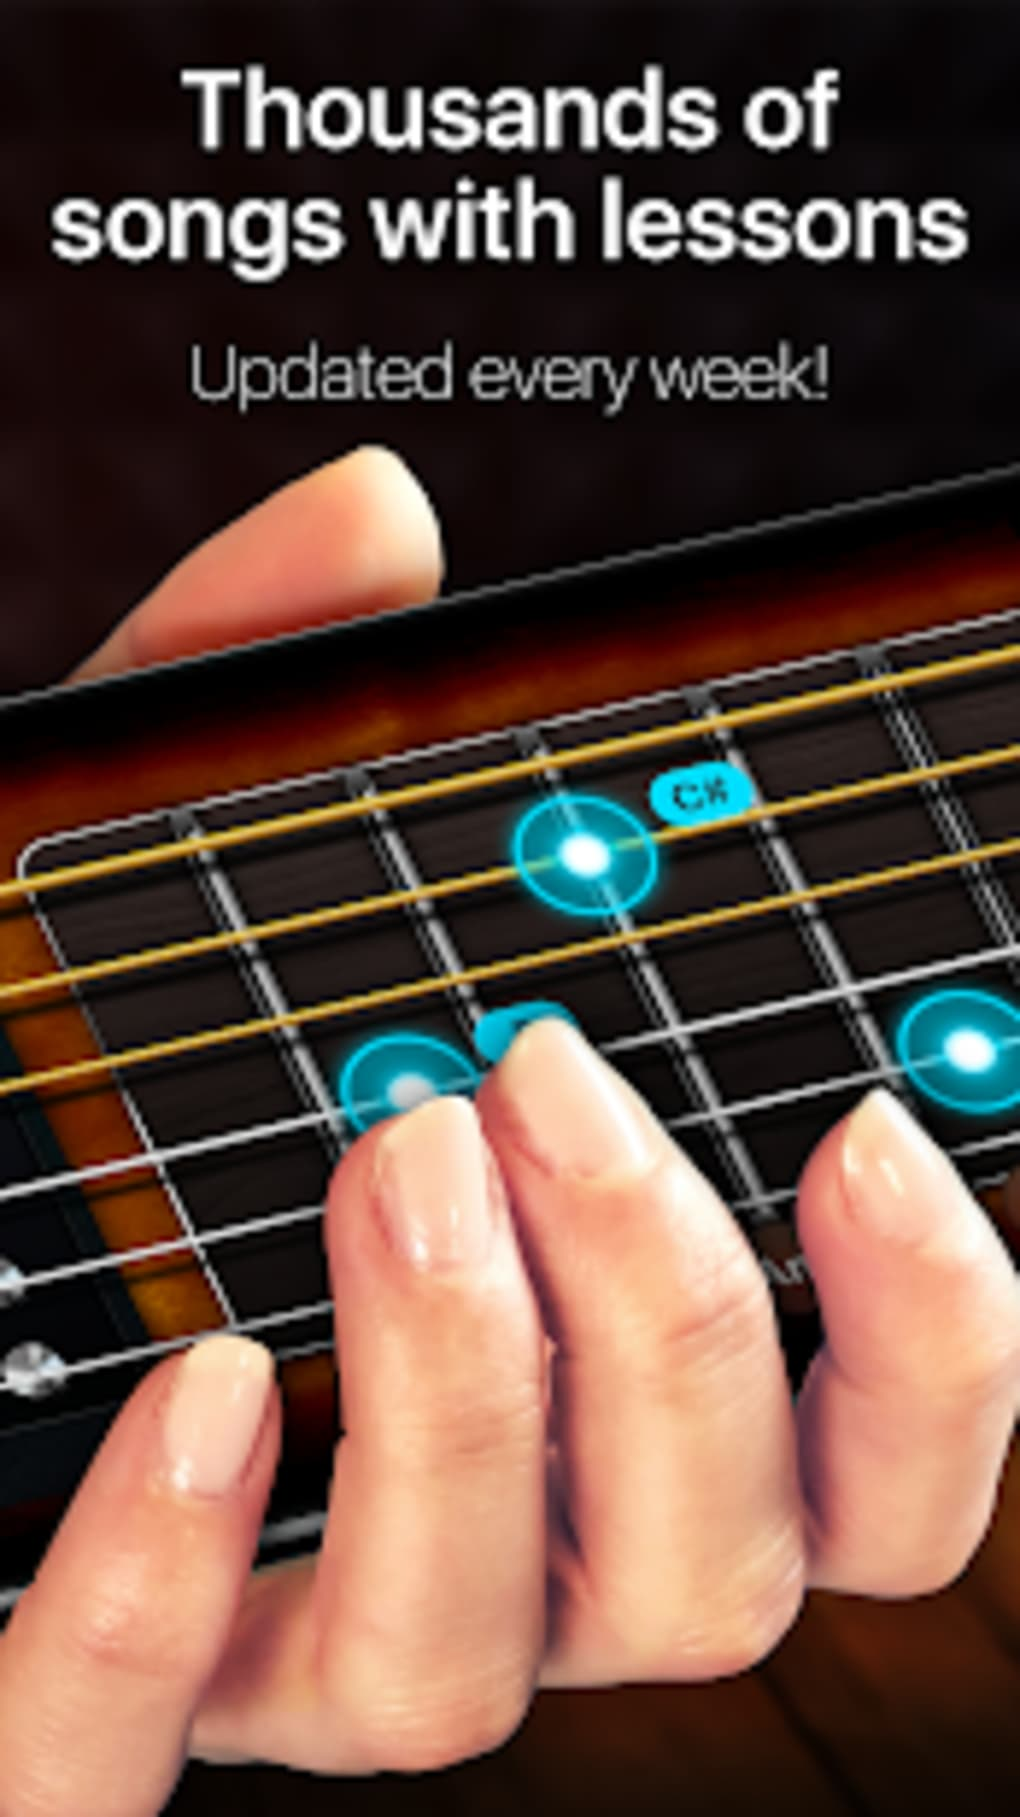 Guitar Play Music Games Pro Tabs And Chords For Android Download